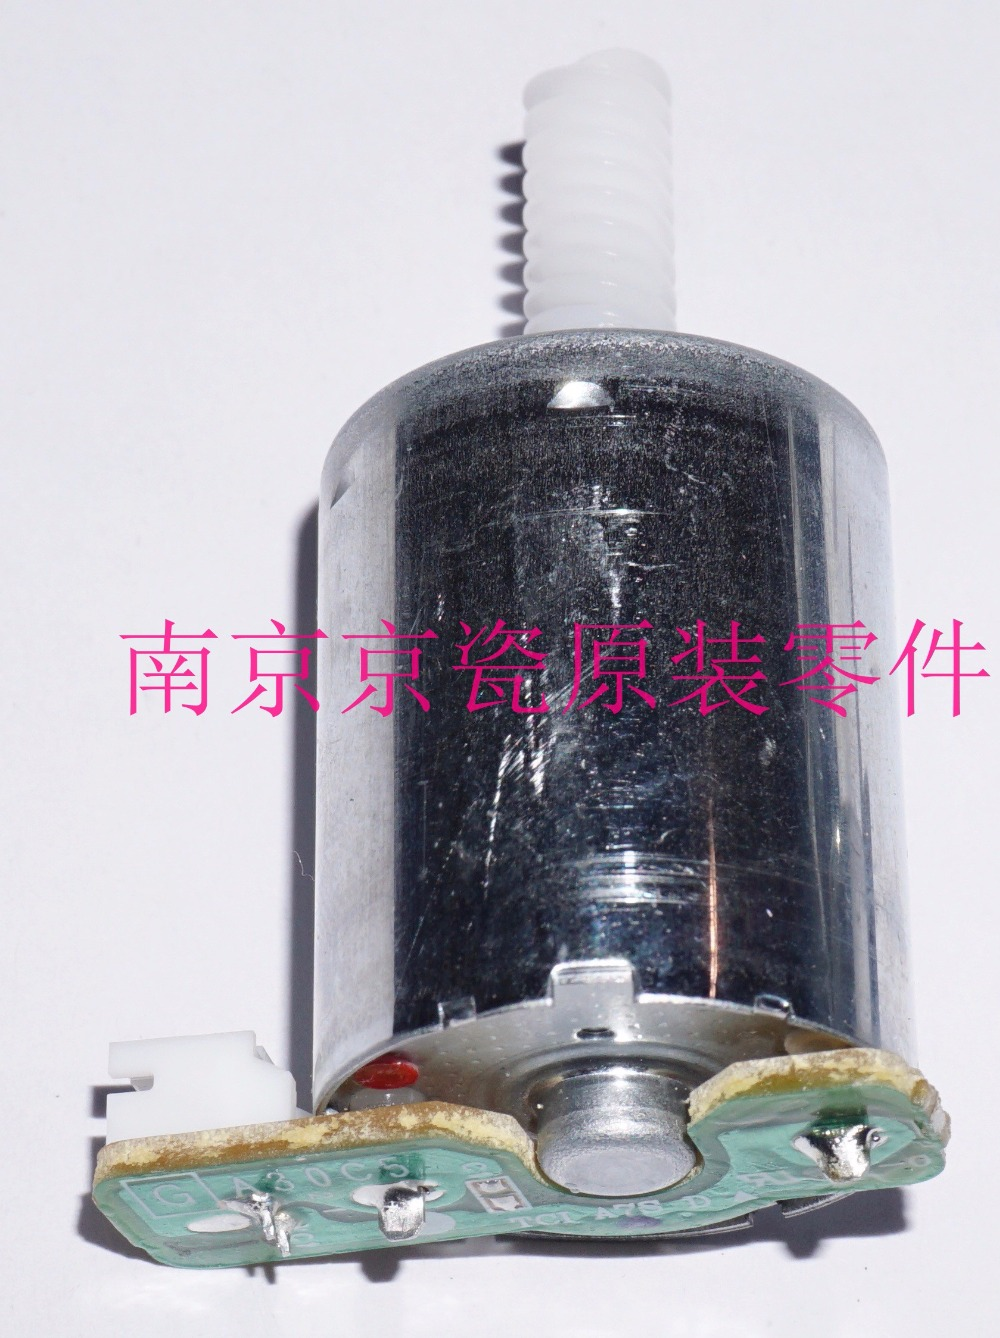 все цены на New Original Kyocera DC MOTOR ASSY for:P6130 P6035 P7040 онлайн